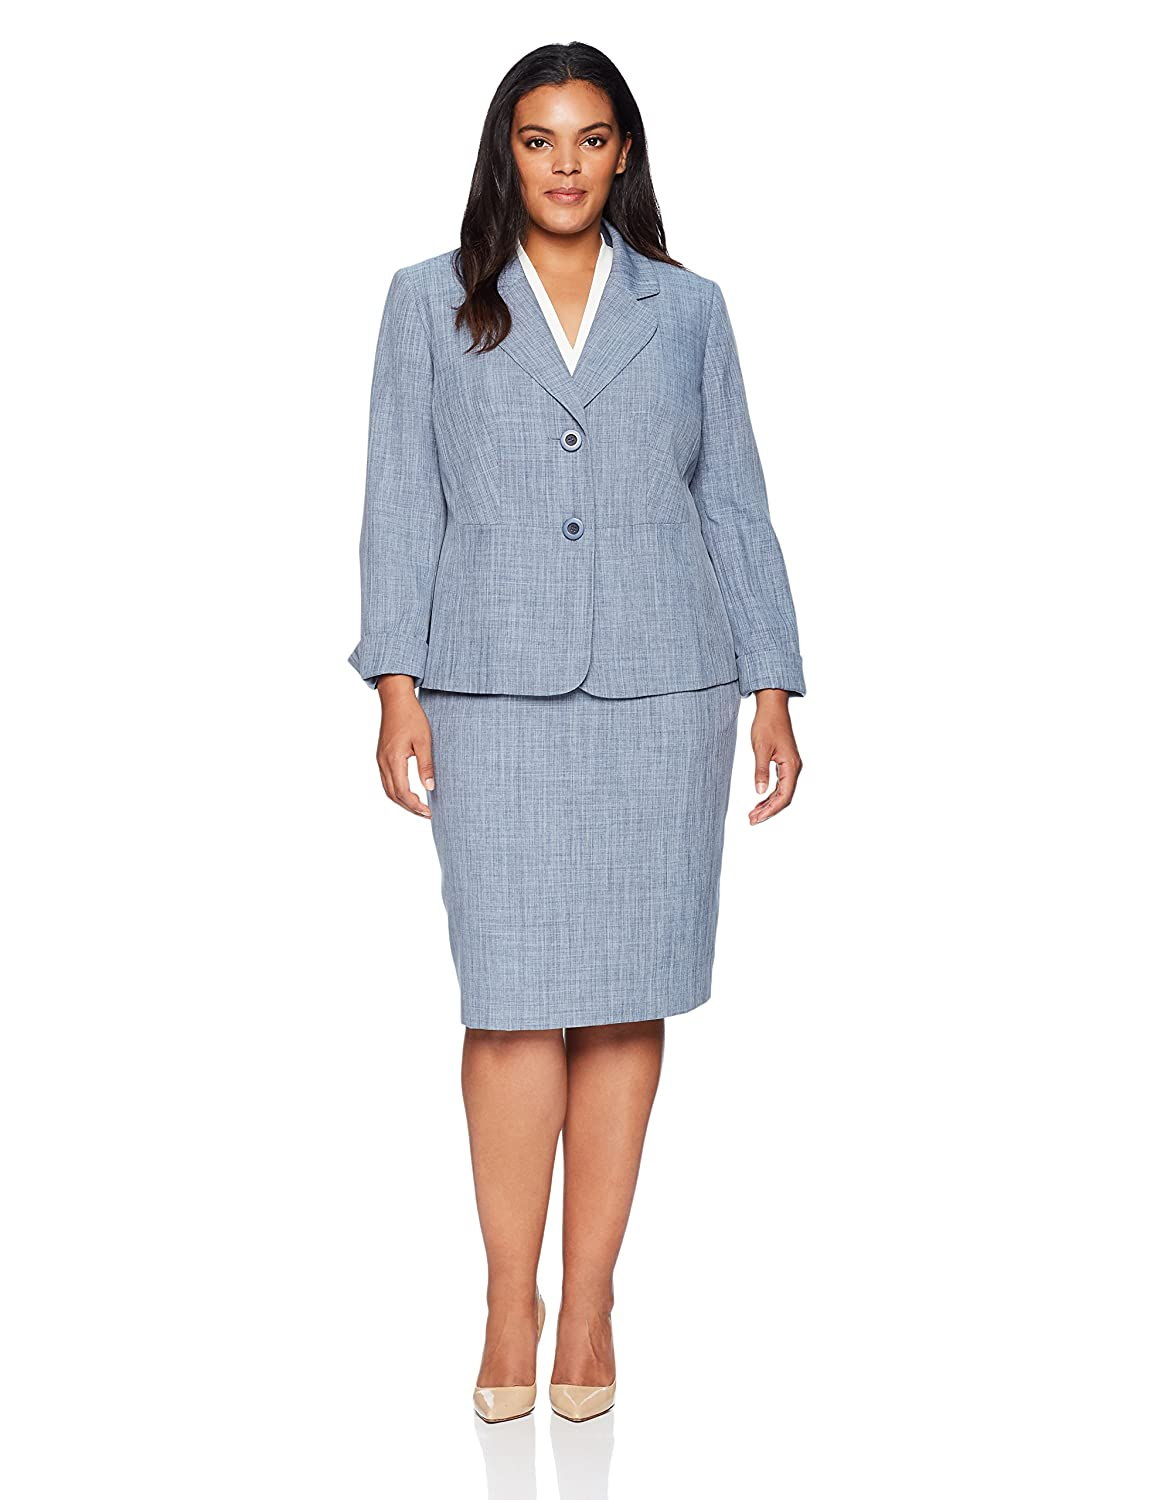 Le Suit Women's Size Plus Melange 2 Bttn Notch Lapel Skirt 50036981